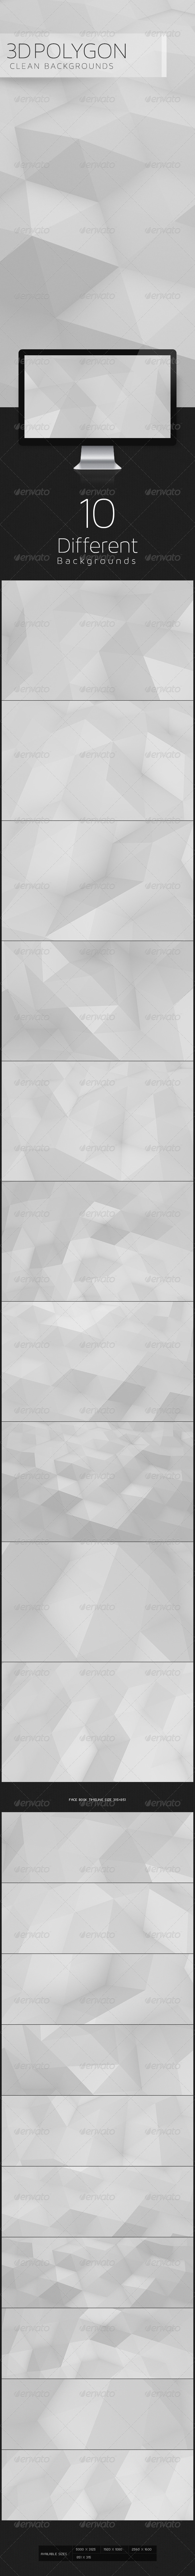 3D Polygon Clean Backgroun - 3D Backgrounds